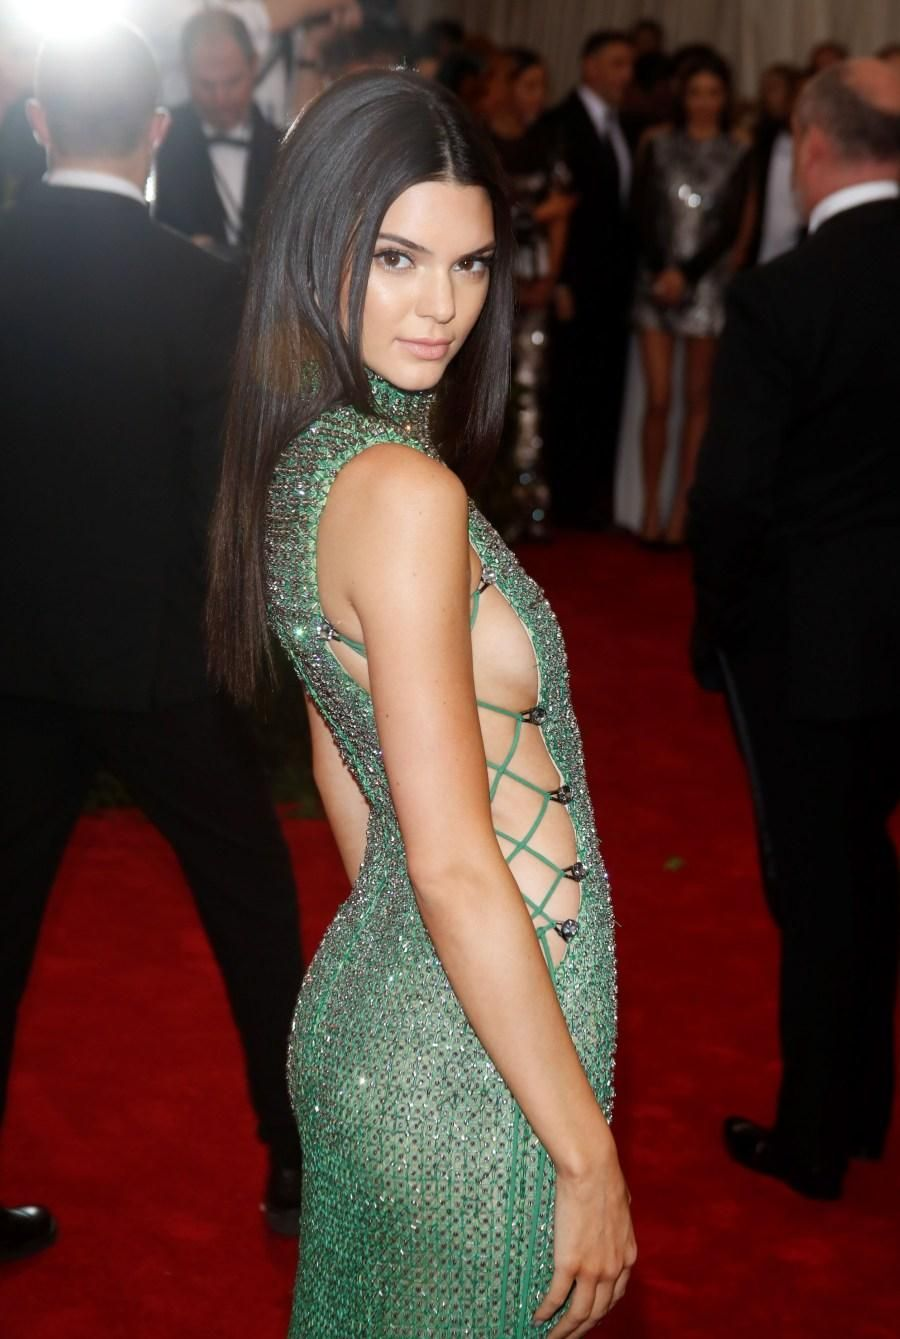 Boobs Kendall Nicole Jenner naked (55 photo), Topless, Cleavage, Twitter, butt 2020